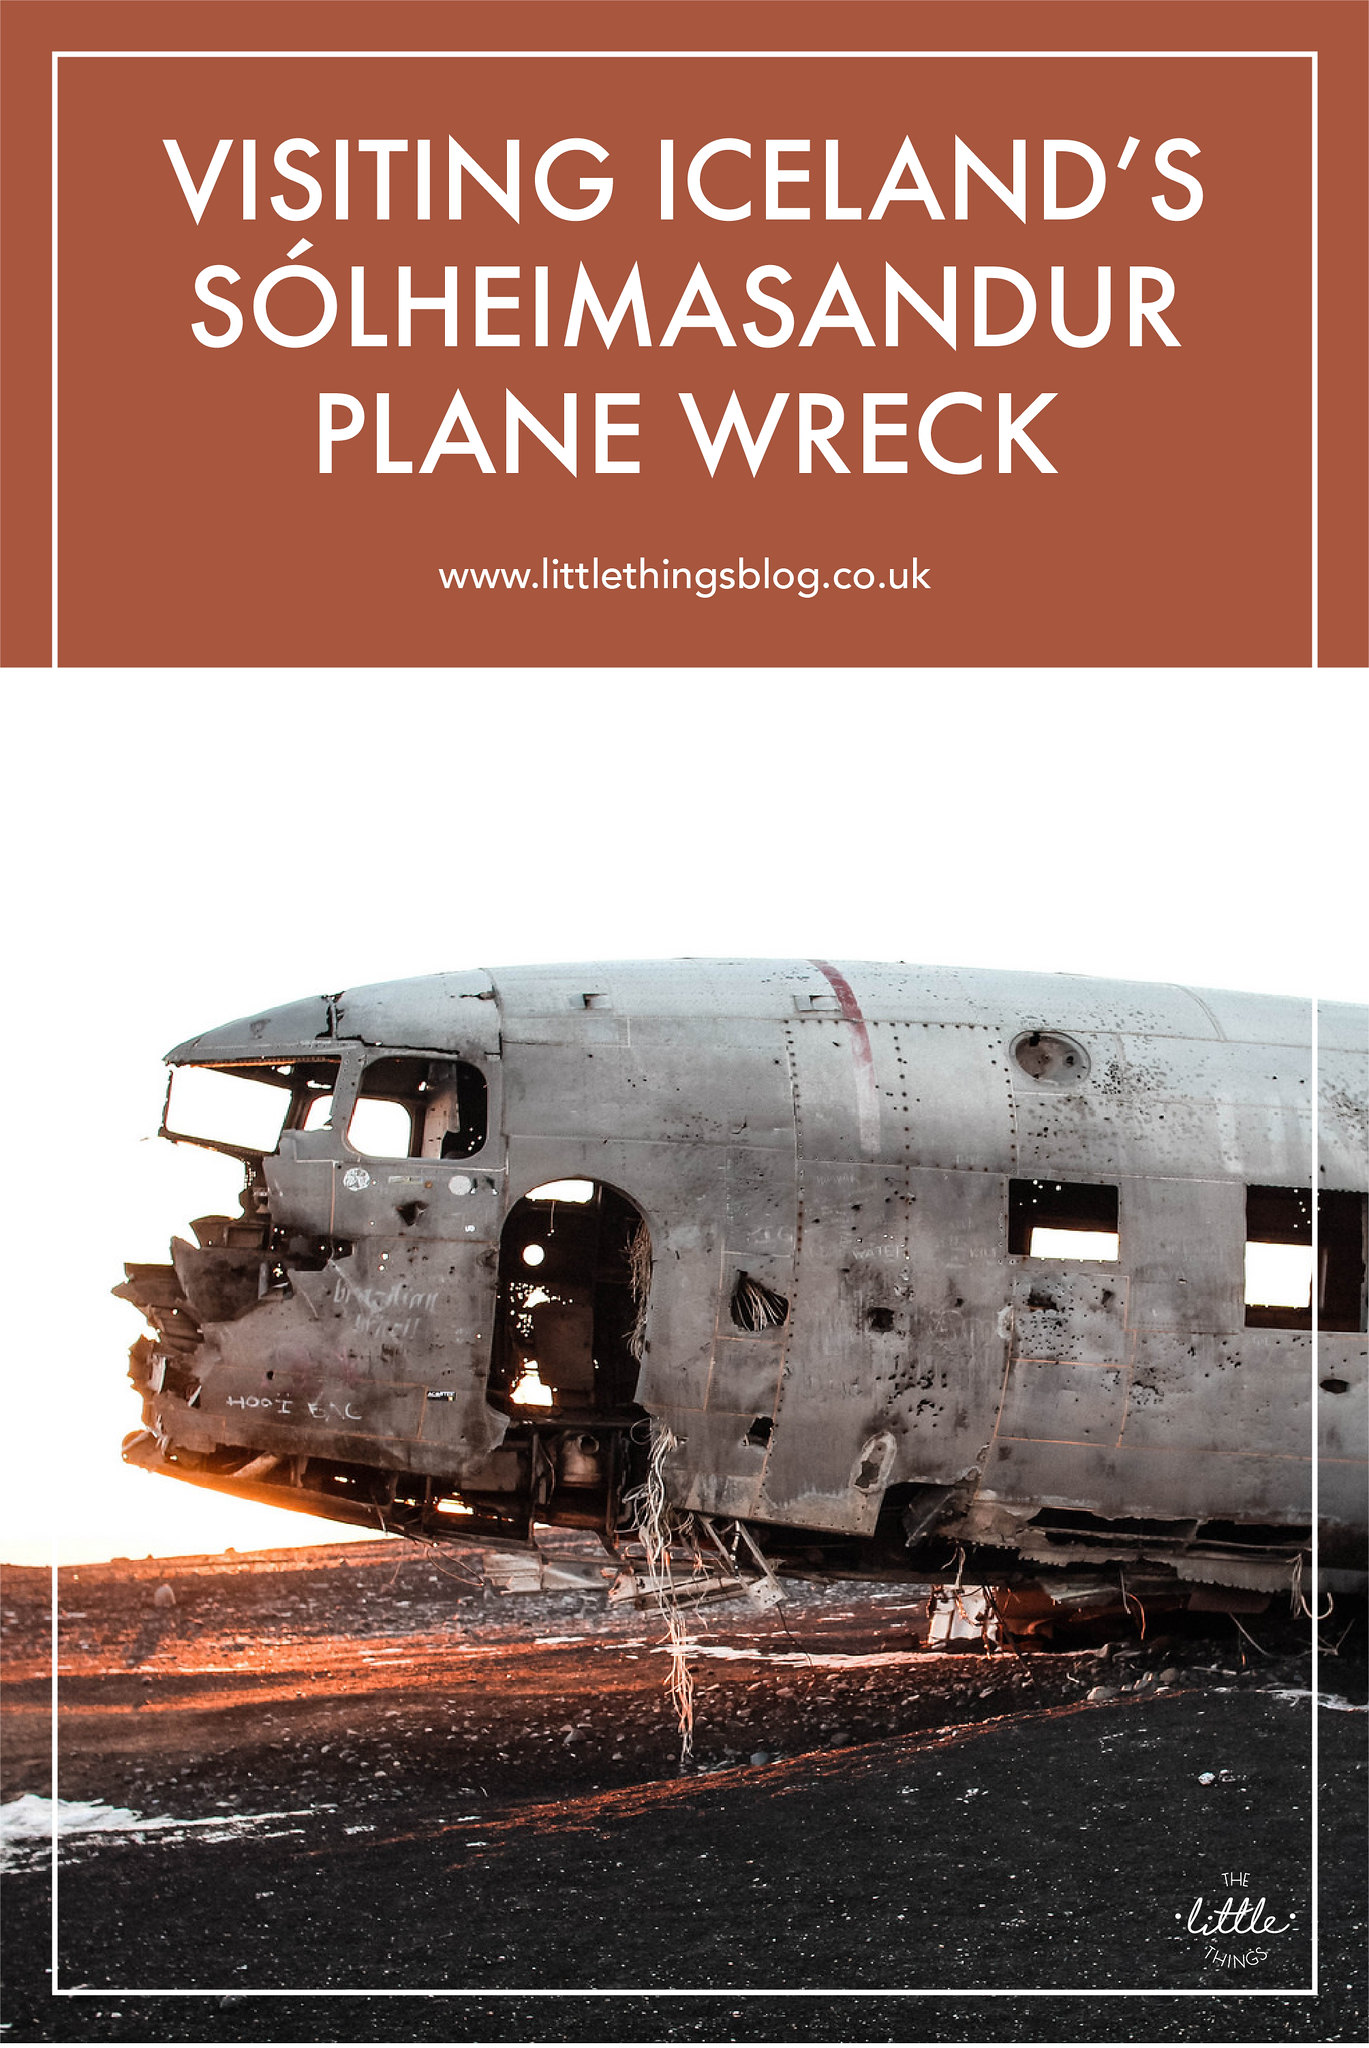 How To Find Iceland's Sólheimasandur Plane Wreck